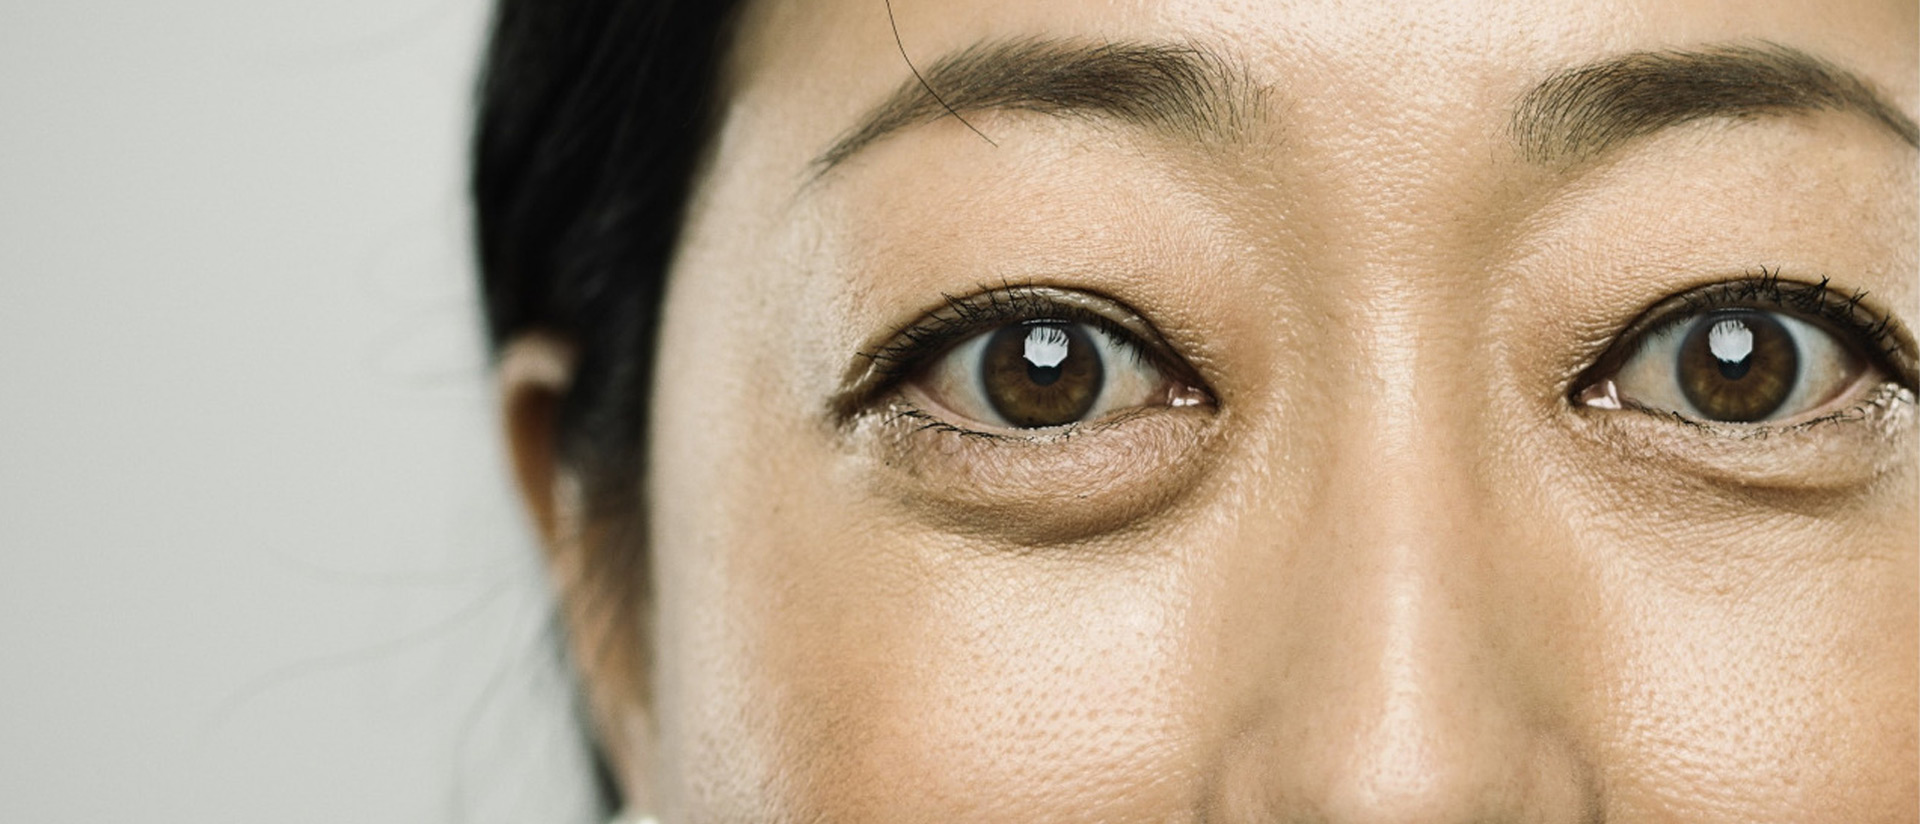 Foods to eat to reduce eye bags and dark circles